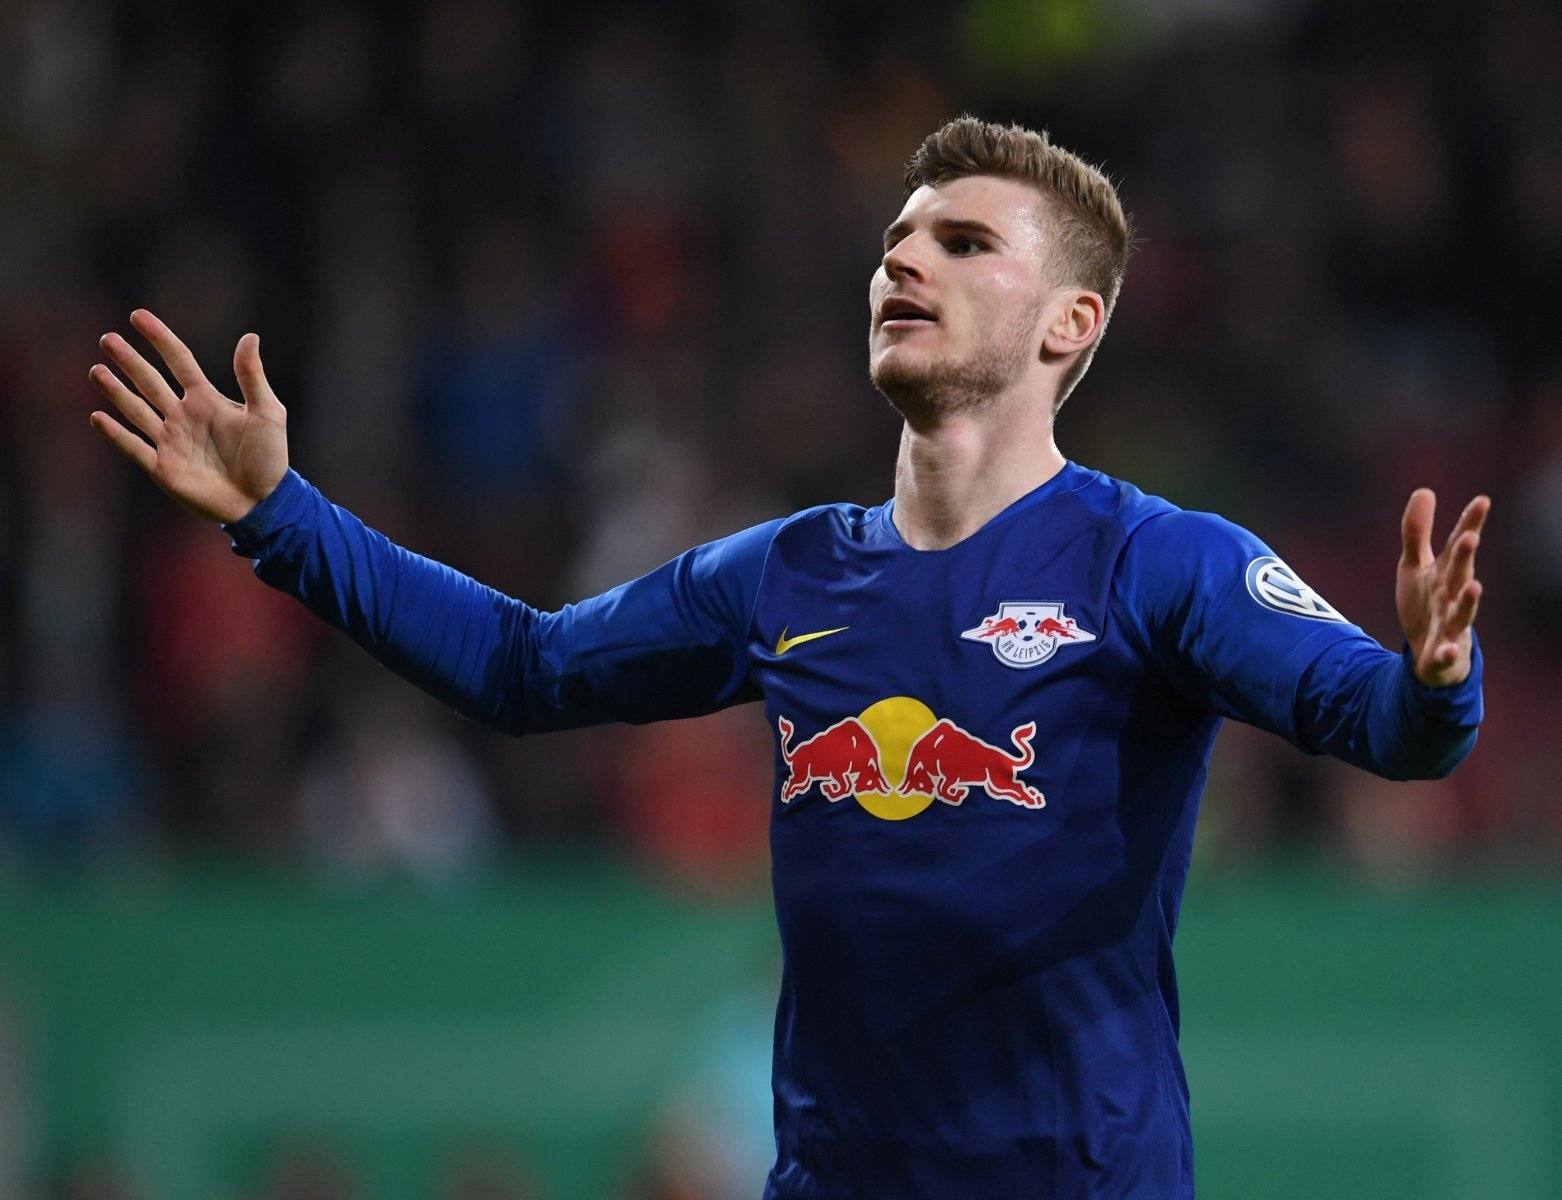 Liverpool: Timo Werner could be the missing piece to propel the Reds to glory